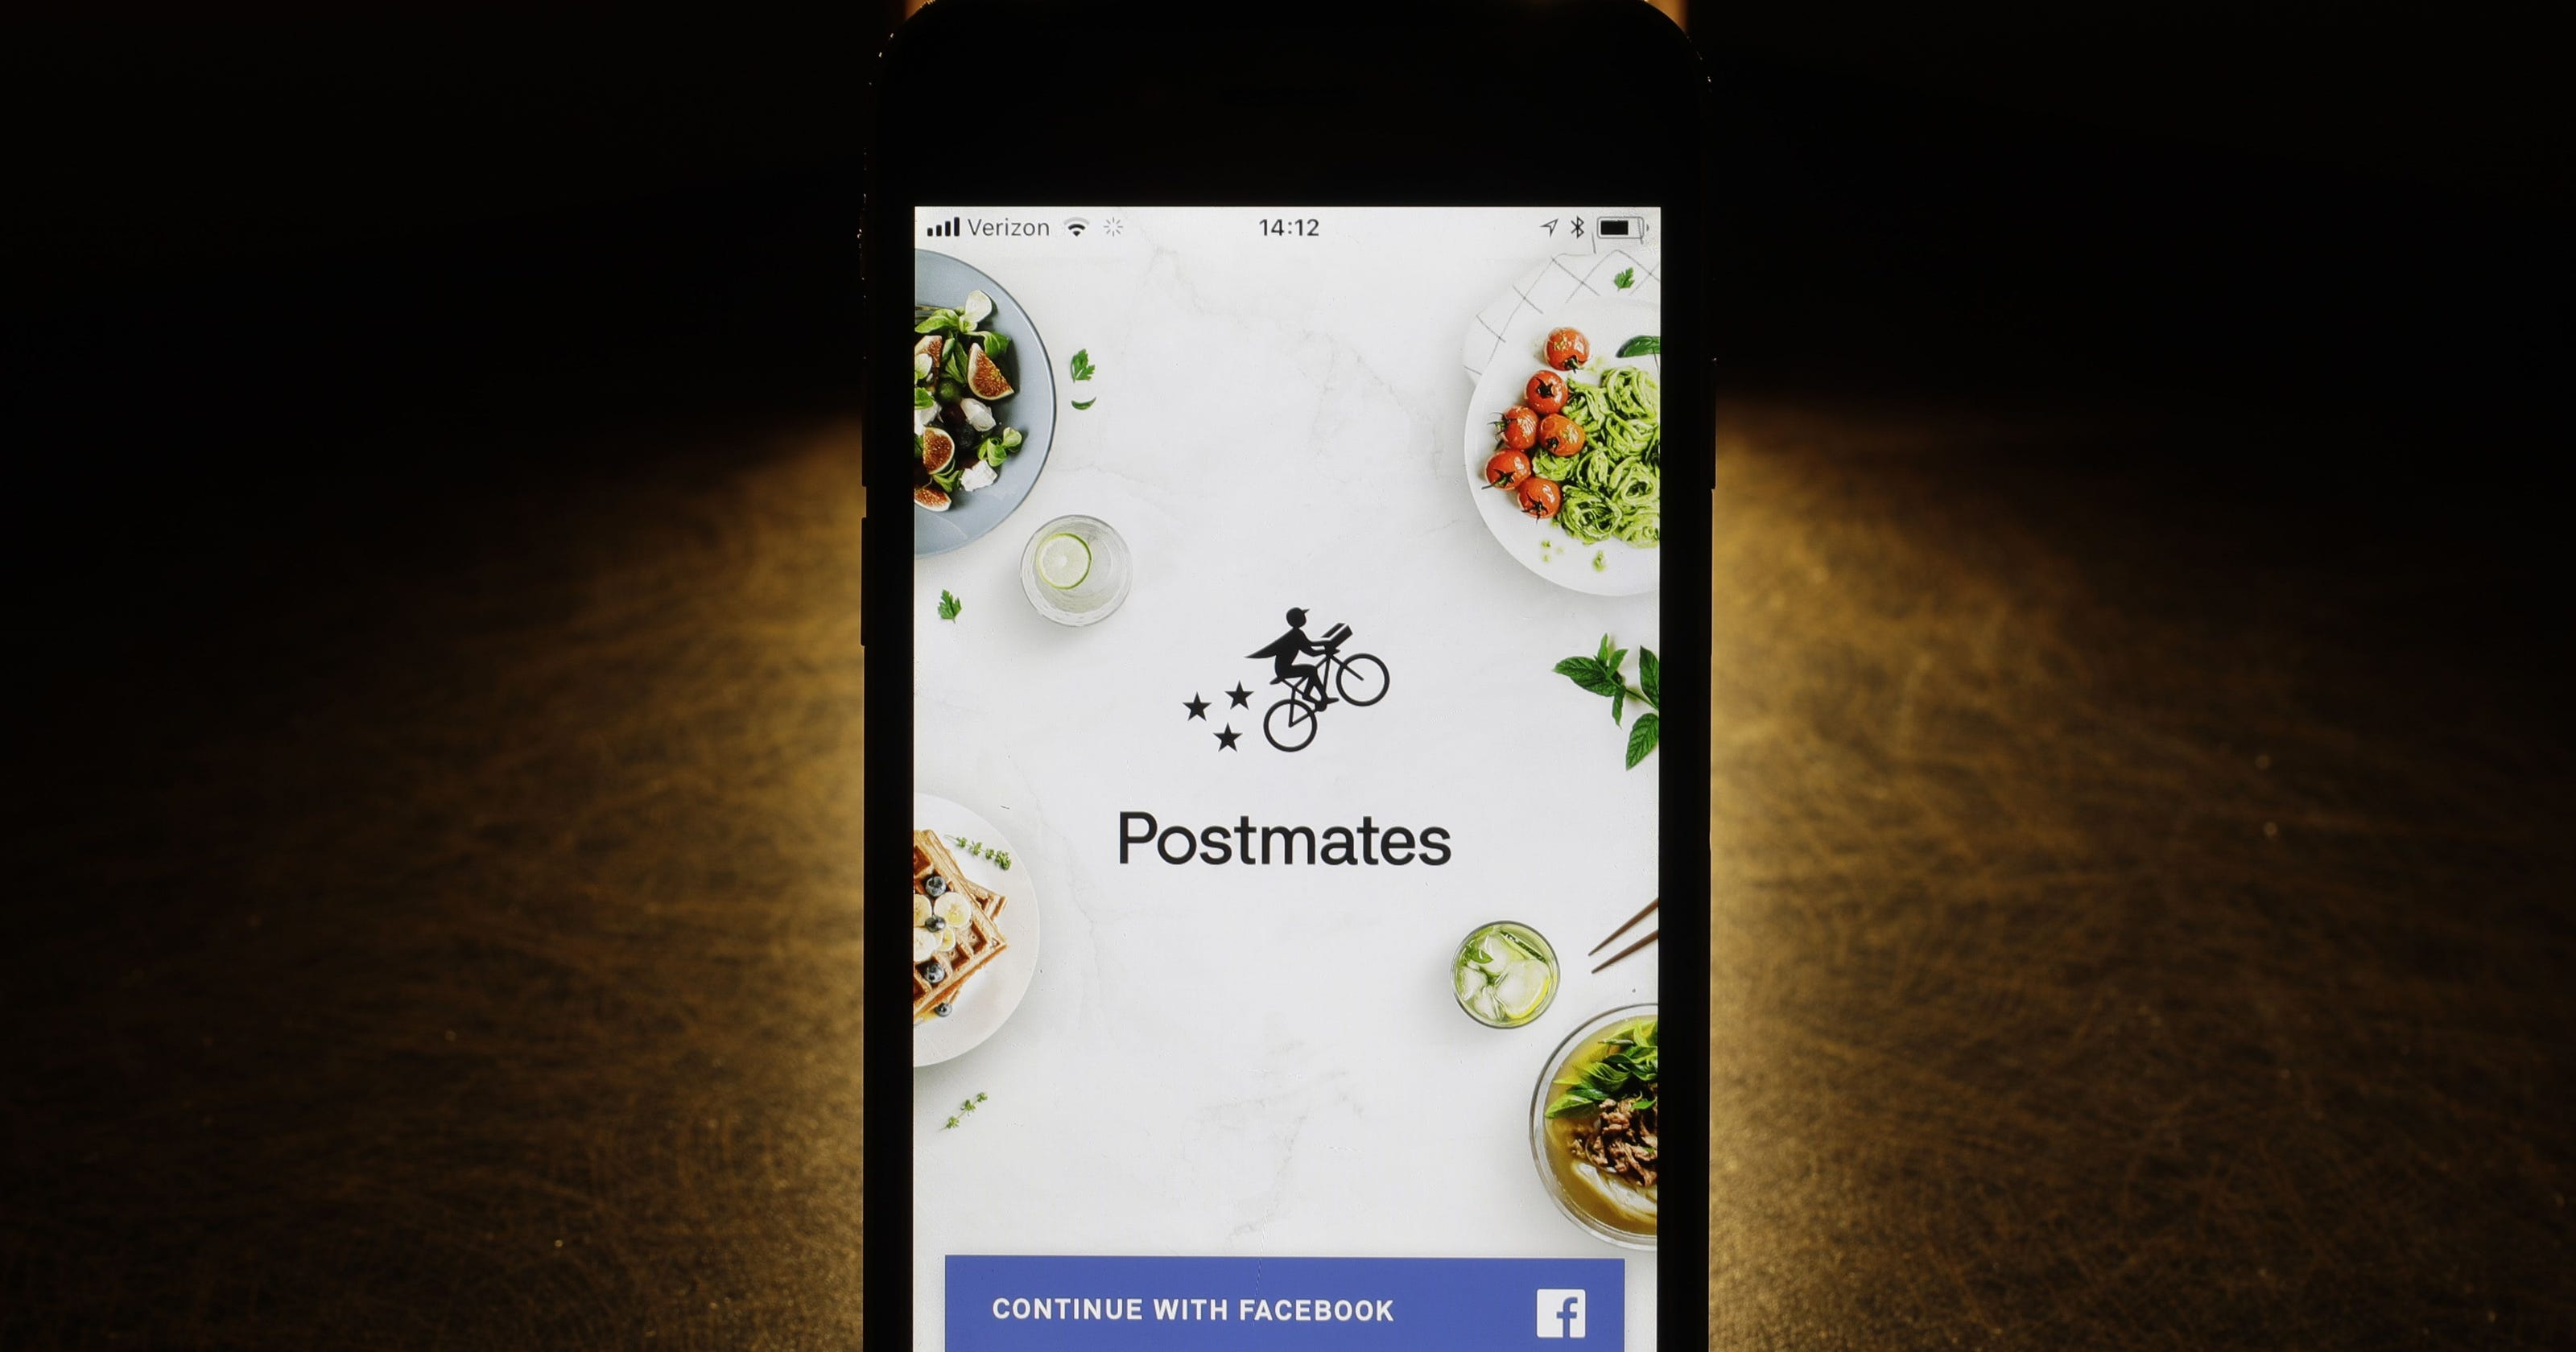 Uber reportedly in talks to buy Postmates after Grubhub deal falls through